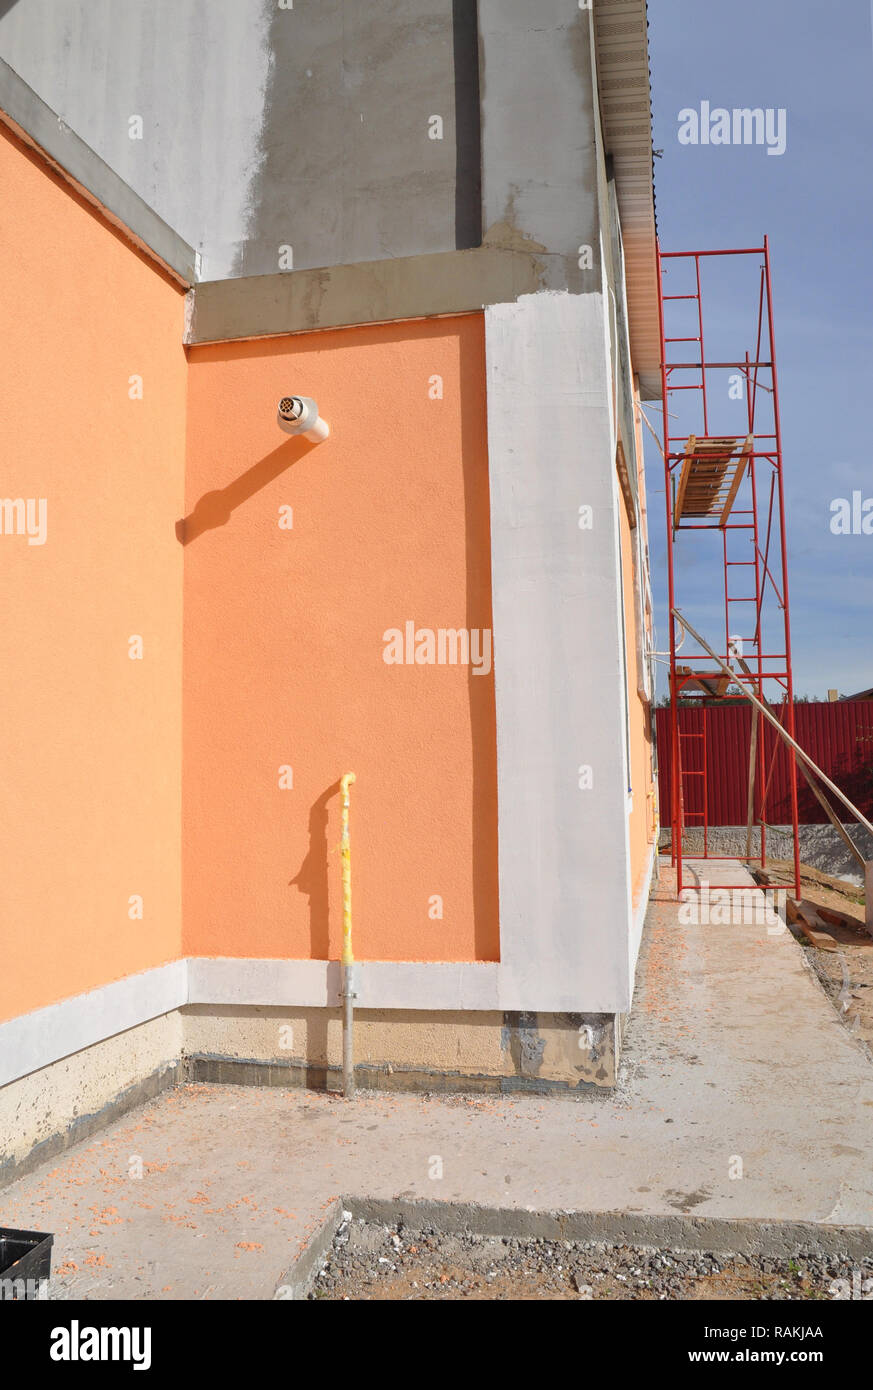 Painting house walls. New house construction foundation waterproofing, damp proofing, insulation with contrete path to avoid water leaks for home wall - Stock Image